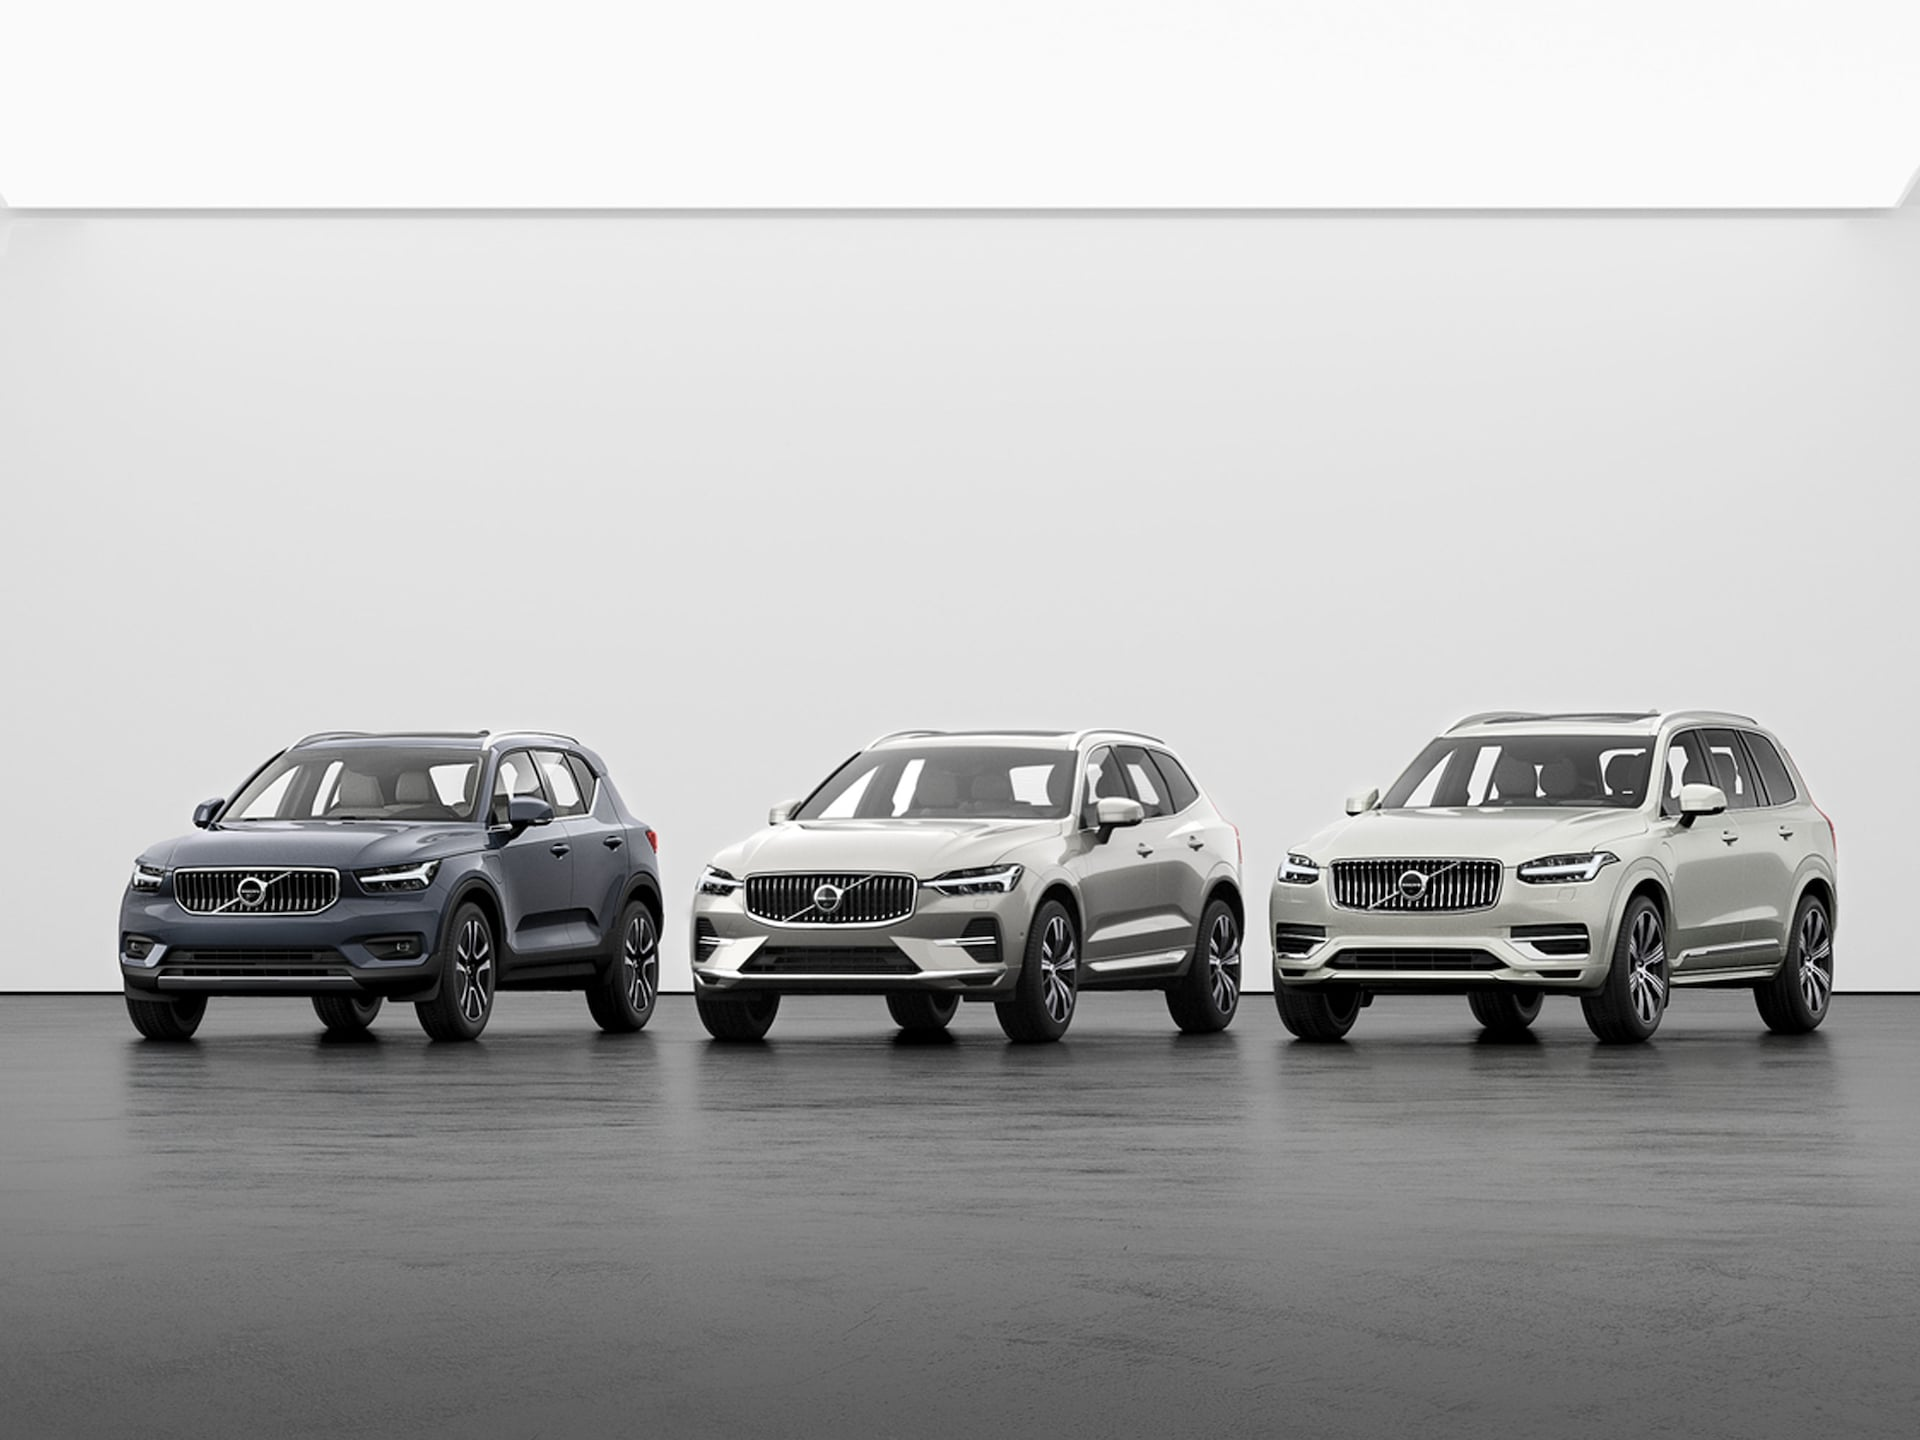 A Volvo XC40, XC60, and XC90 side by side